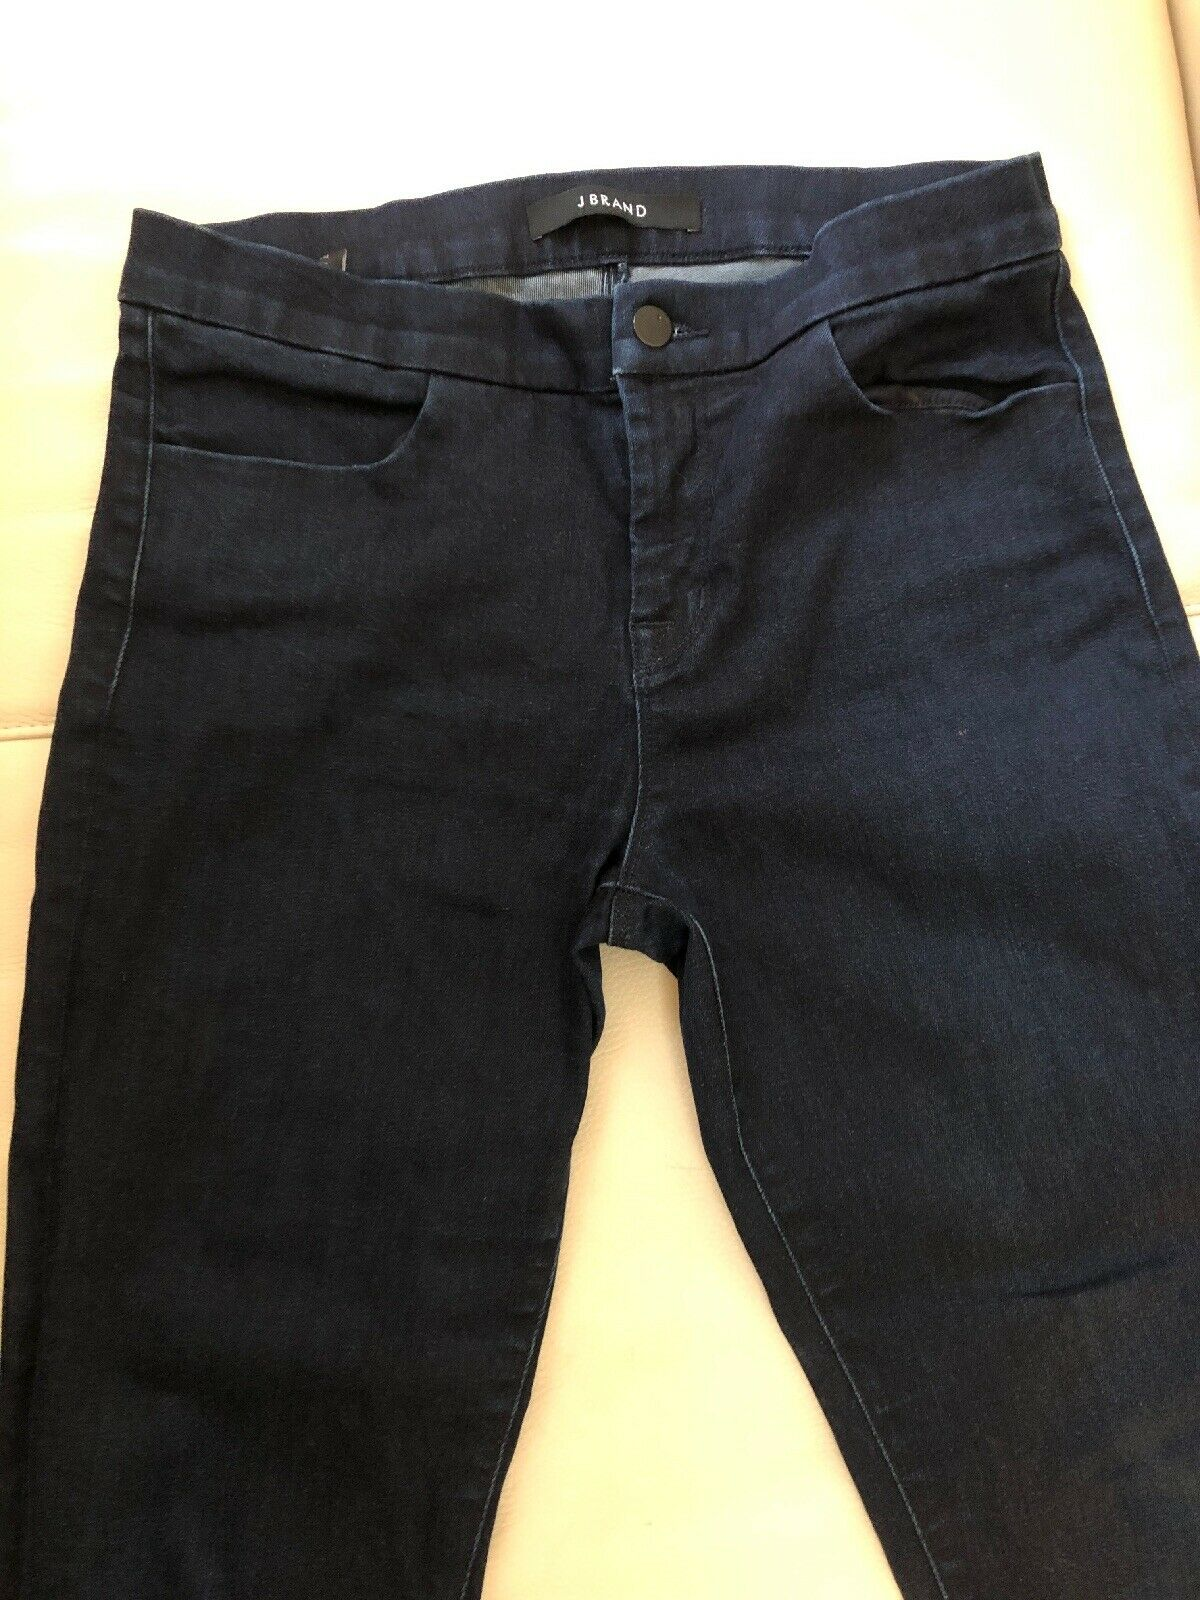 J BRAND Tailored Crop Jeans Inkwell Dark Wash Denim Sz 28  188